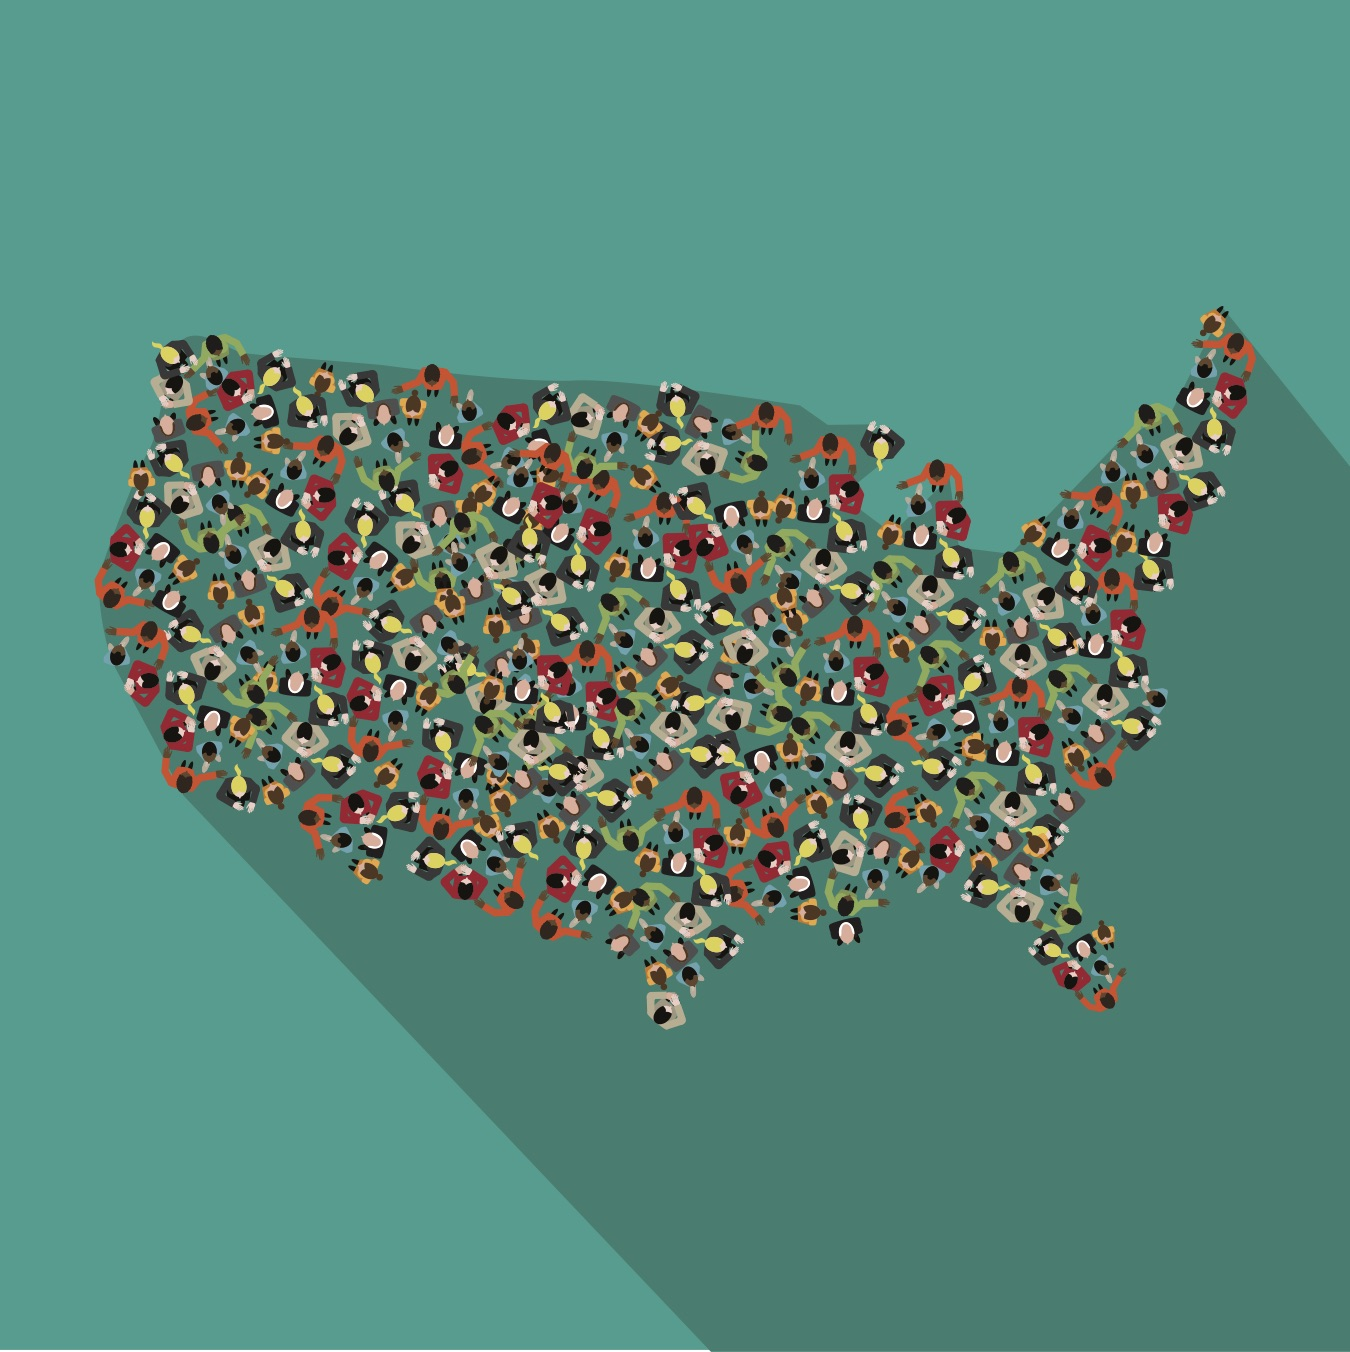 view of the United States from above shows the the country is made up of people standing close together